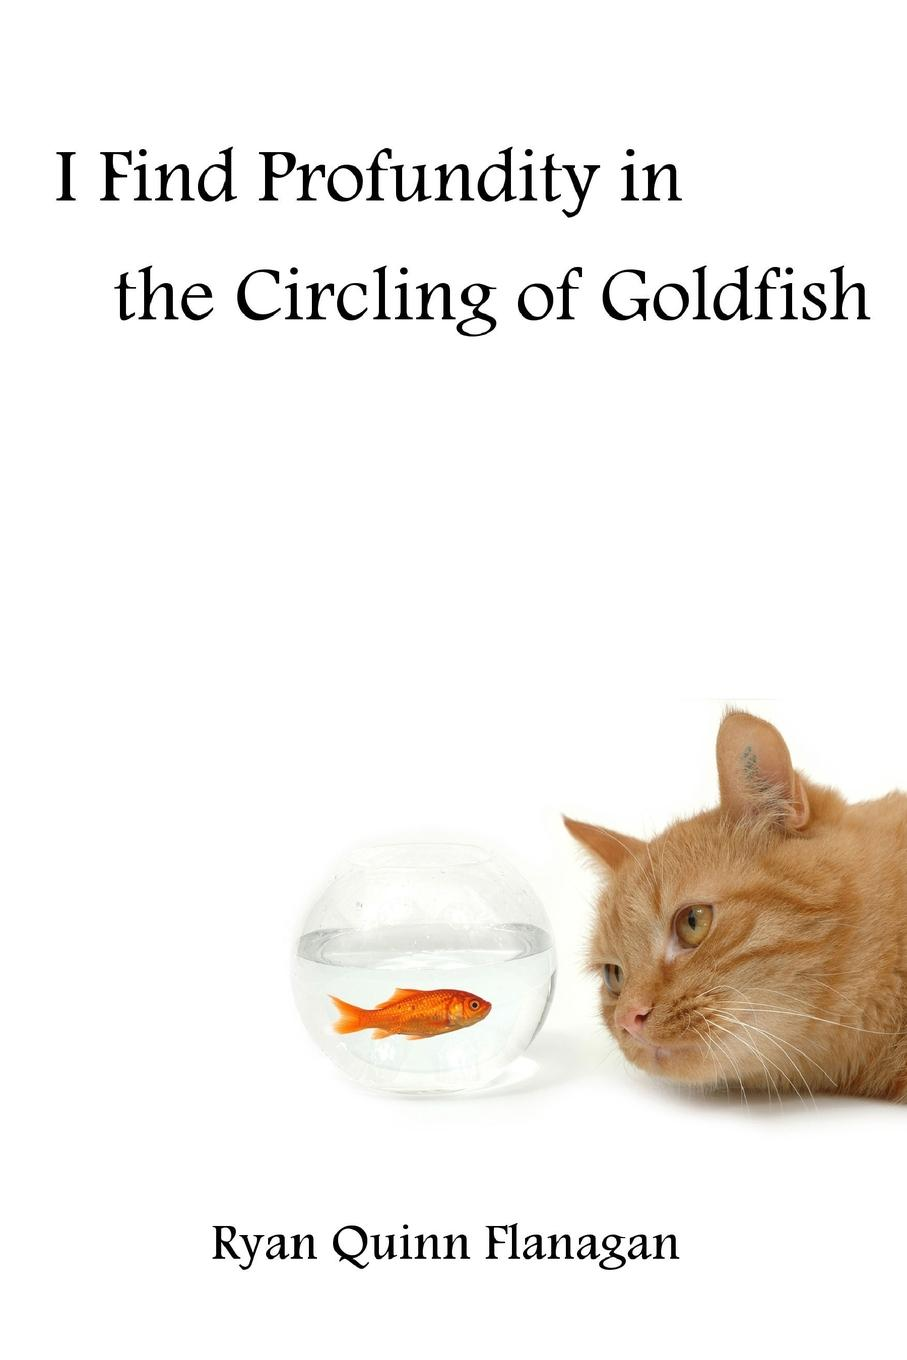 Ryan Quinn Flanagan I Find Profundity in the Circling of Goldfish quinn daniel ishmael